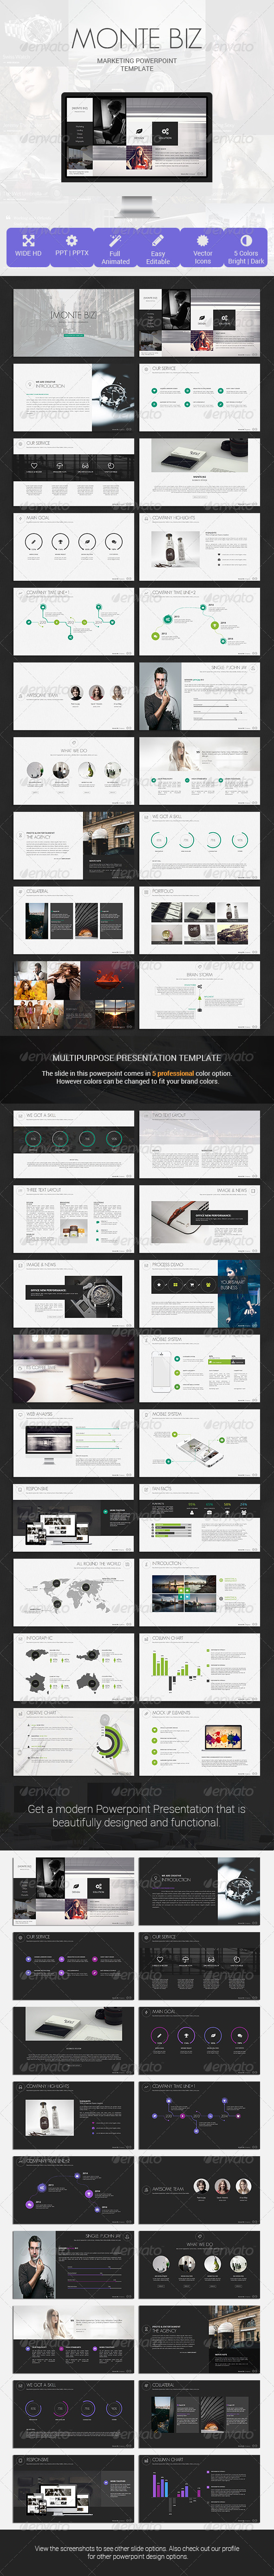 GraphicRiver Monte Biz Presentation Template 8123649